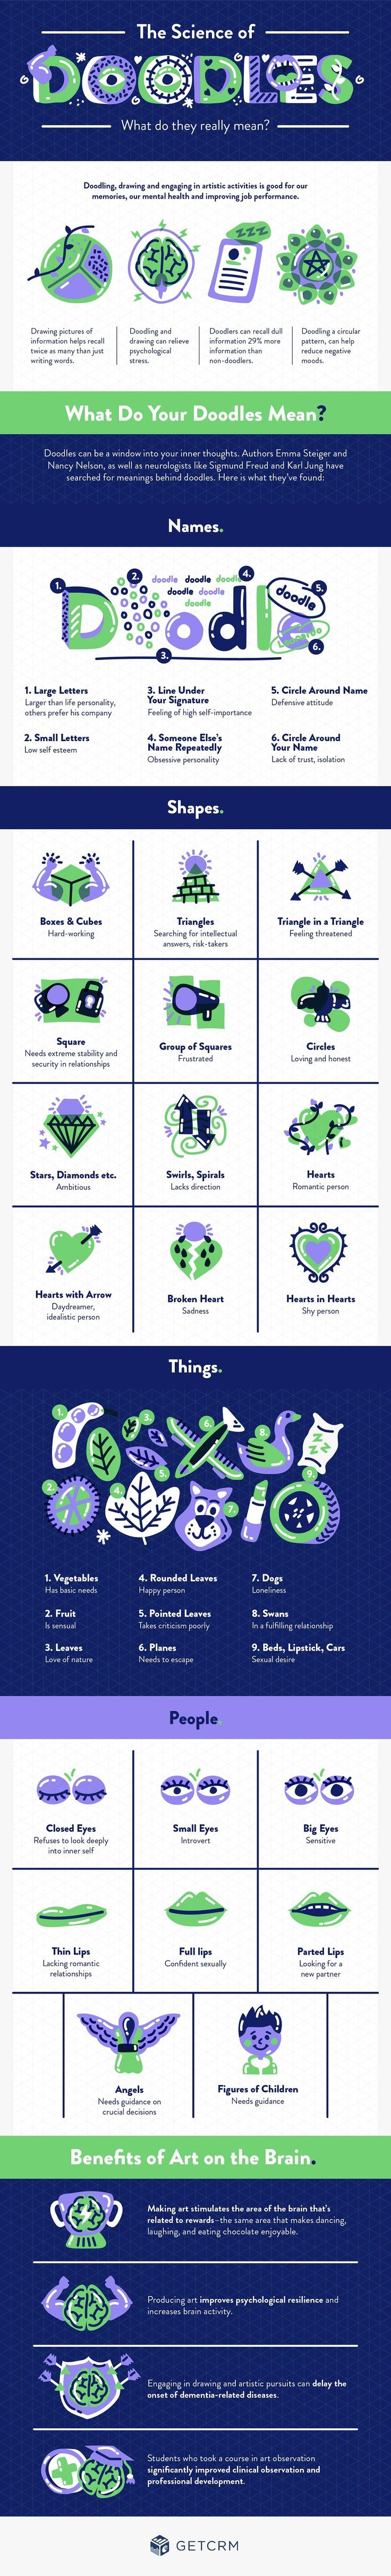 The Science Doodles What do they really Mean #infographic #Science #Doodle